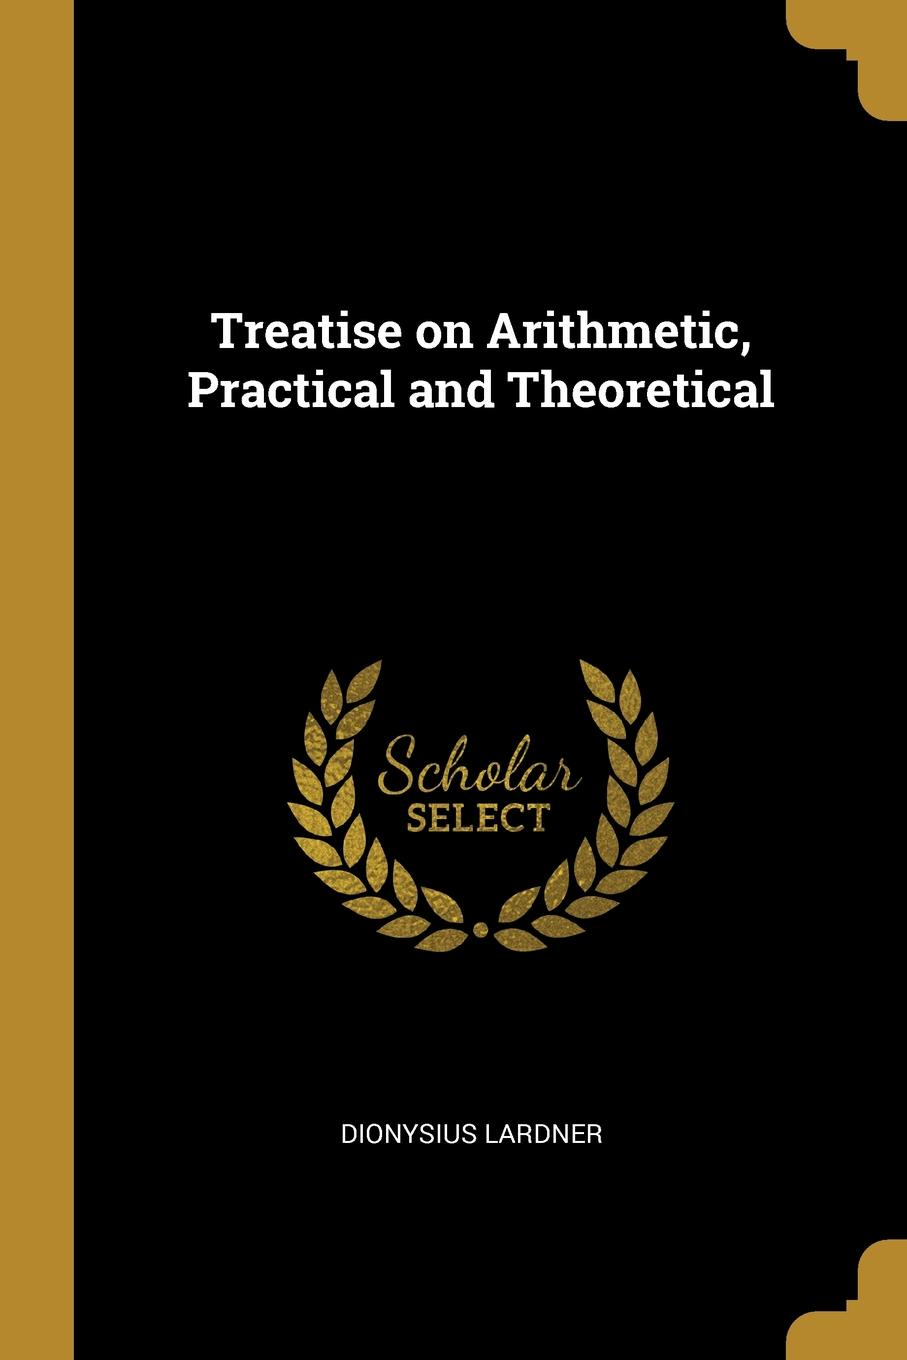 Lardner Dionysius. Treatise on Arithmetic, Practical and Theoretical